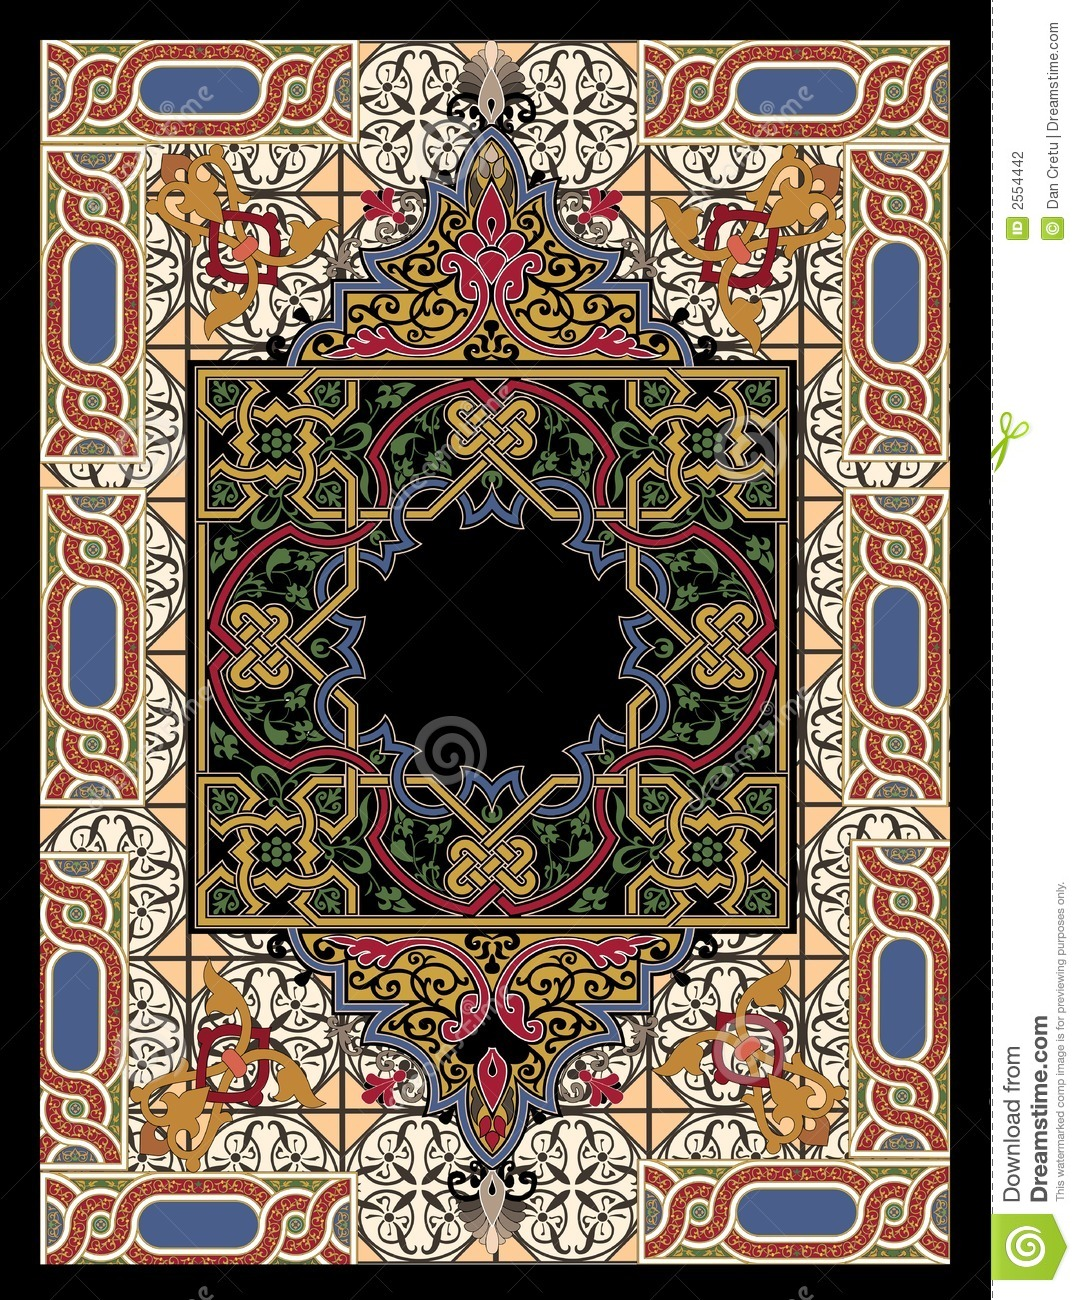 Teppich Knüpfen Muster Colorful Persian Rug Stock Photography - Image: 2554442